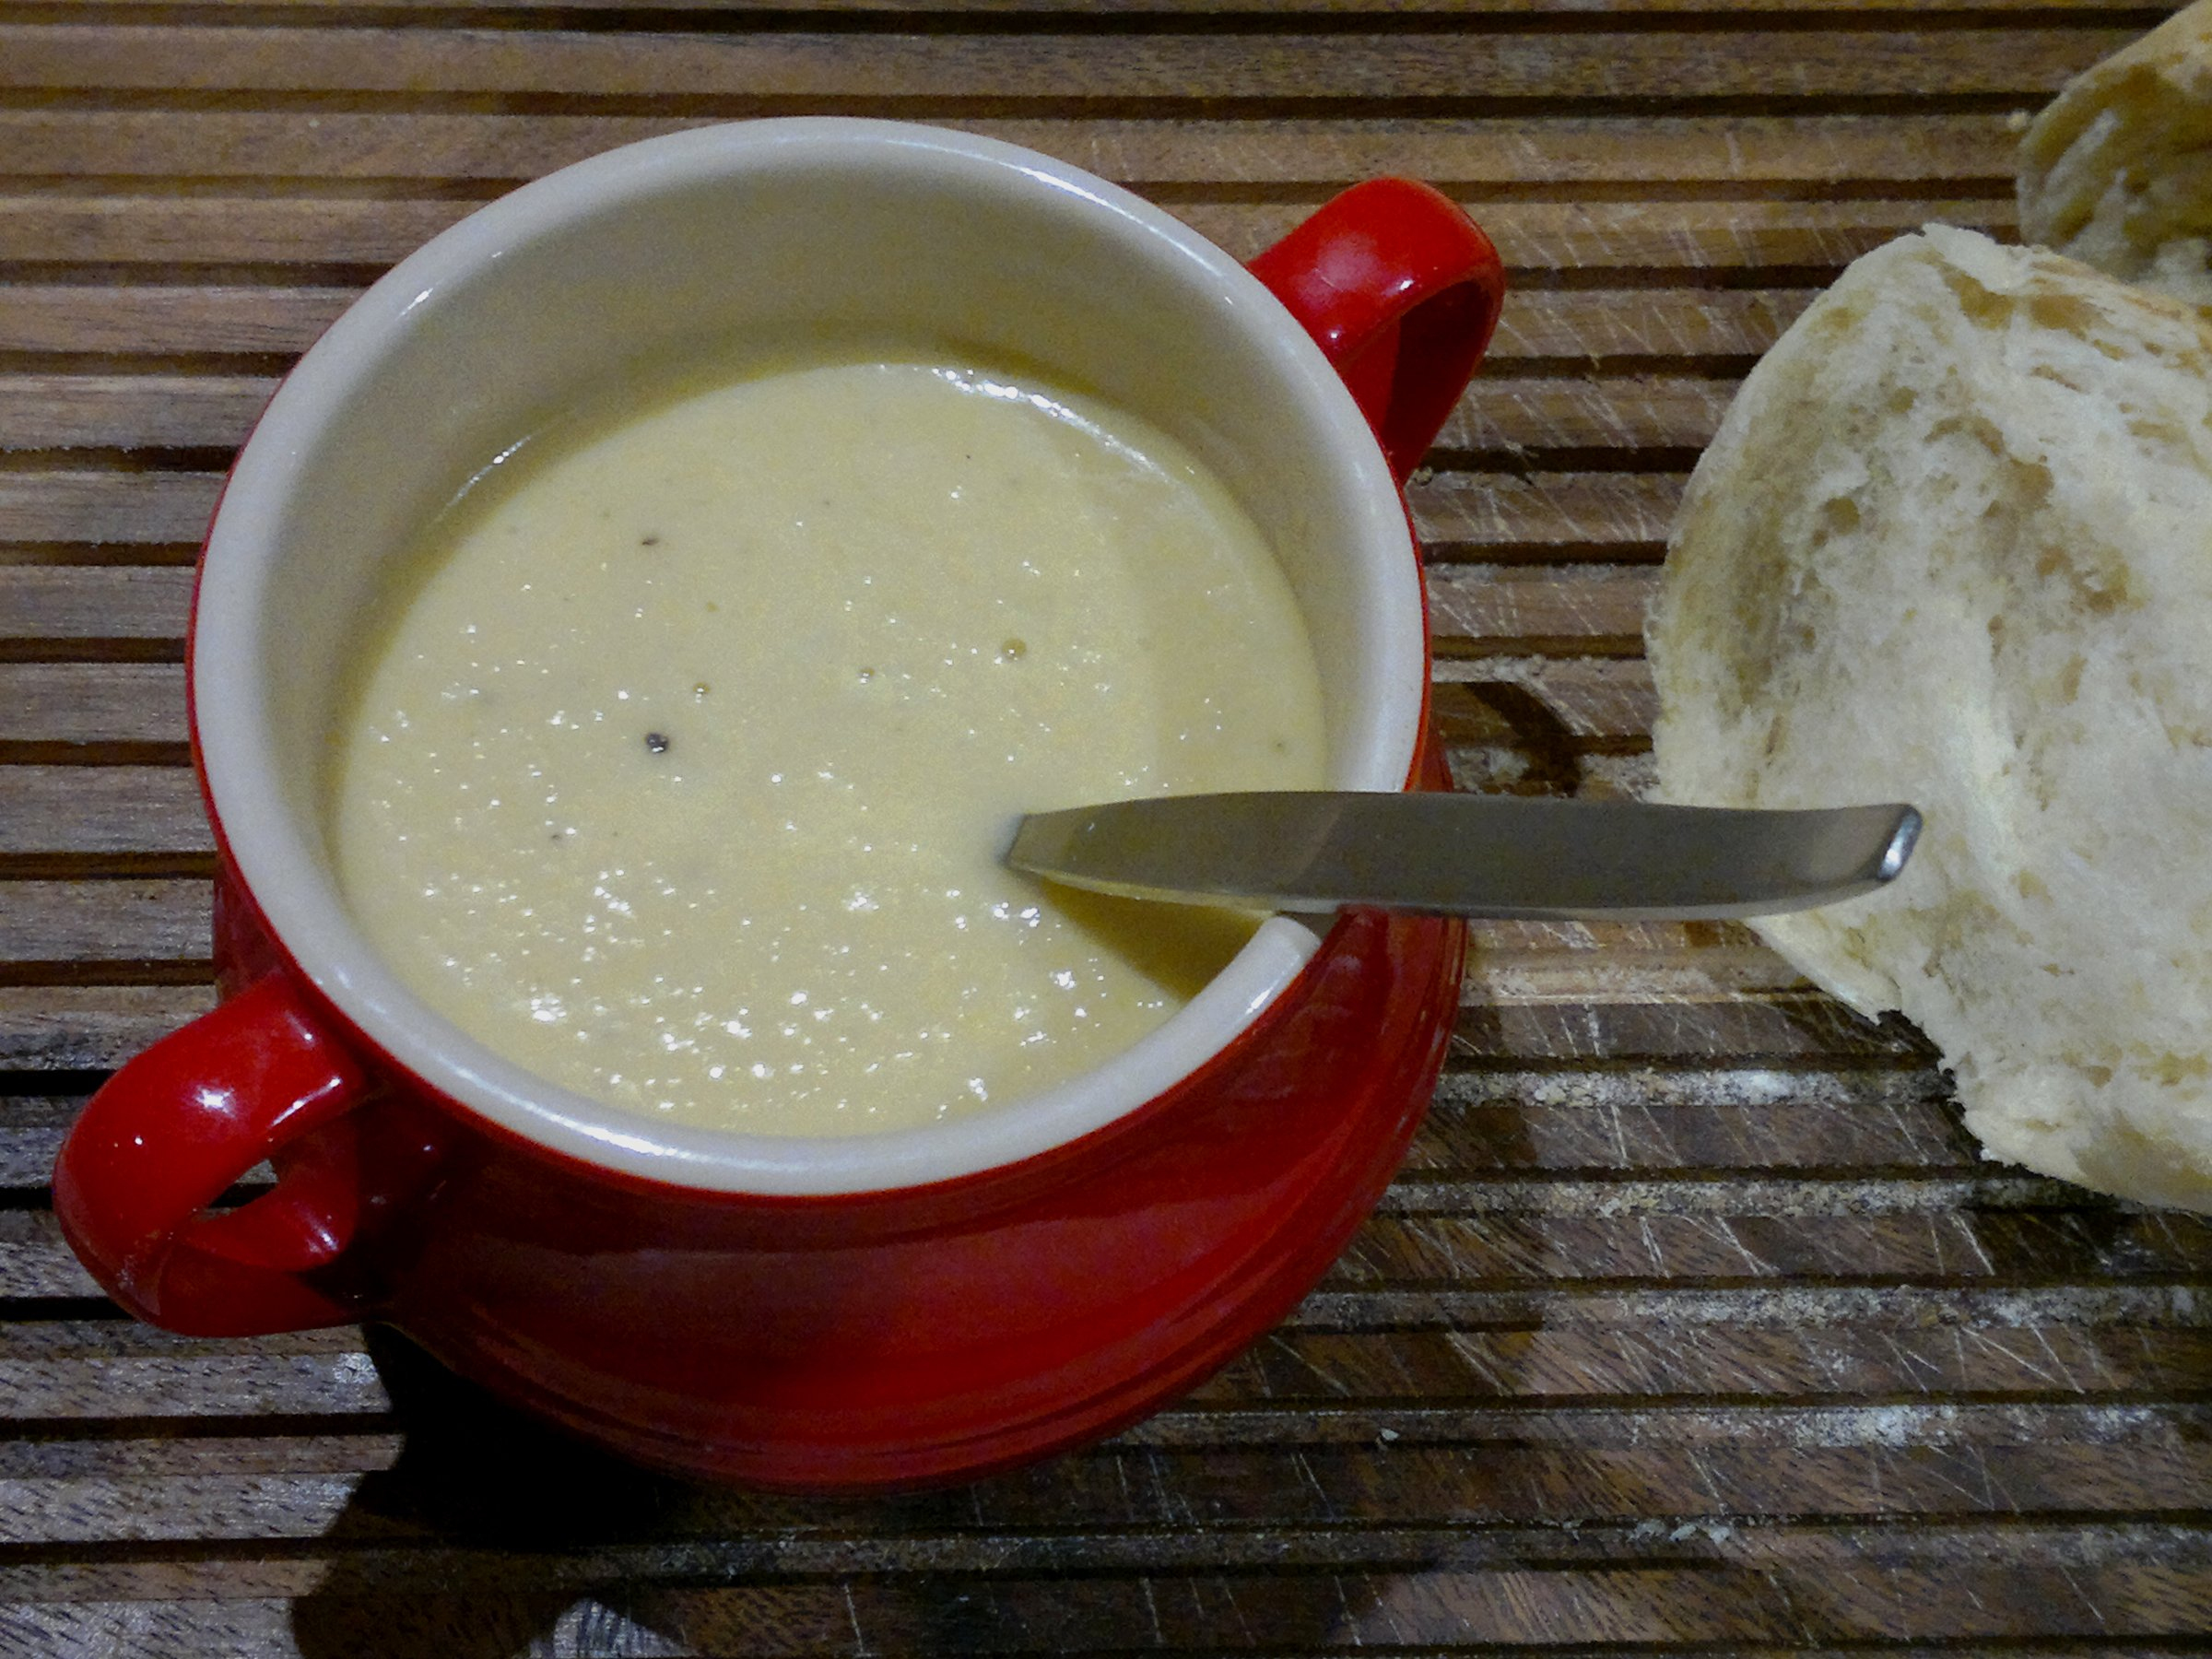 Leek and Jerusalem artichoke soup, served with homemade bread, fresh from the oven